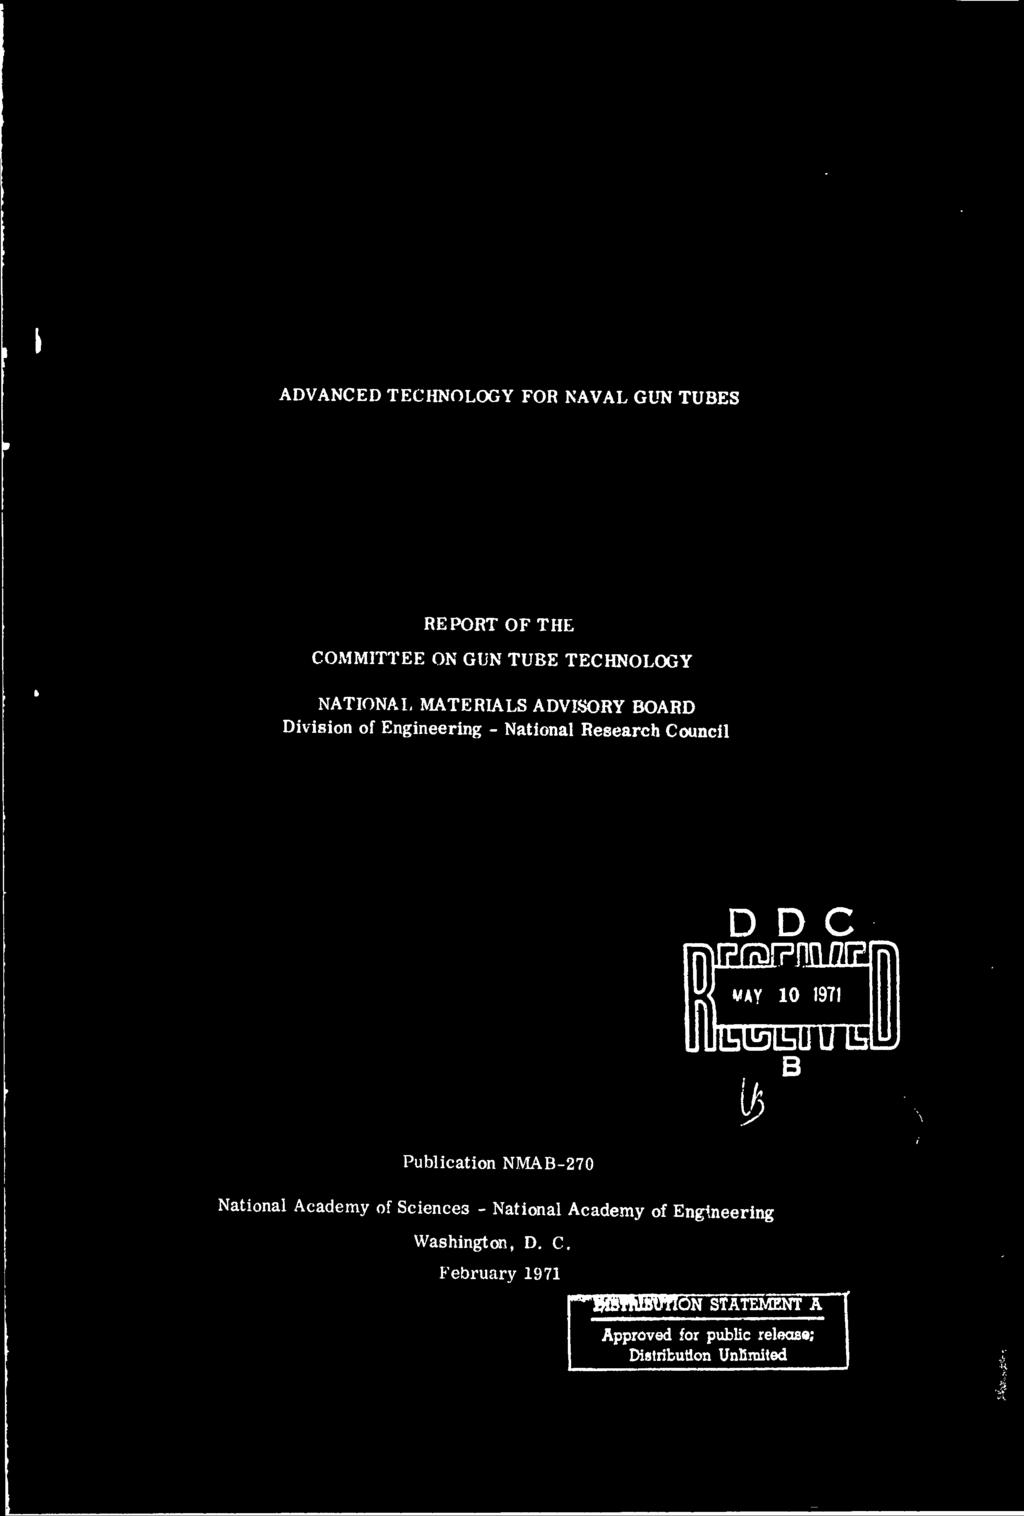 1971 E ED 0 B B Publication NMAB-270 National Academy of Sciences - National Academy of Engineering